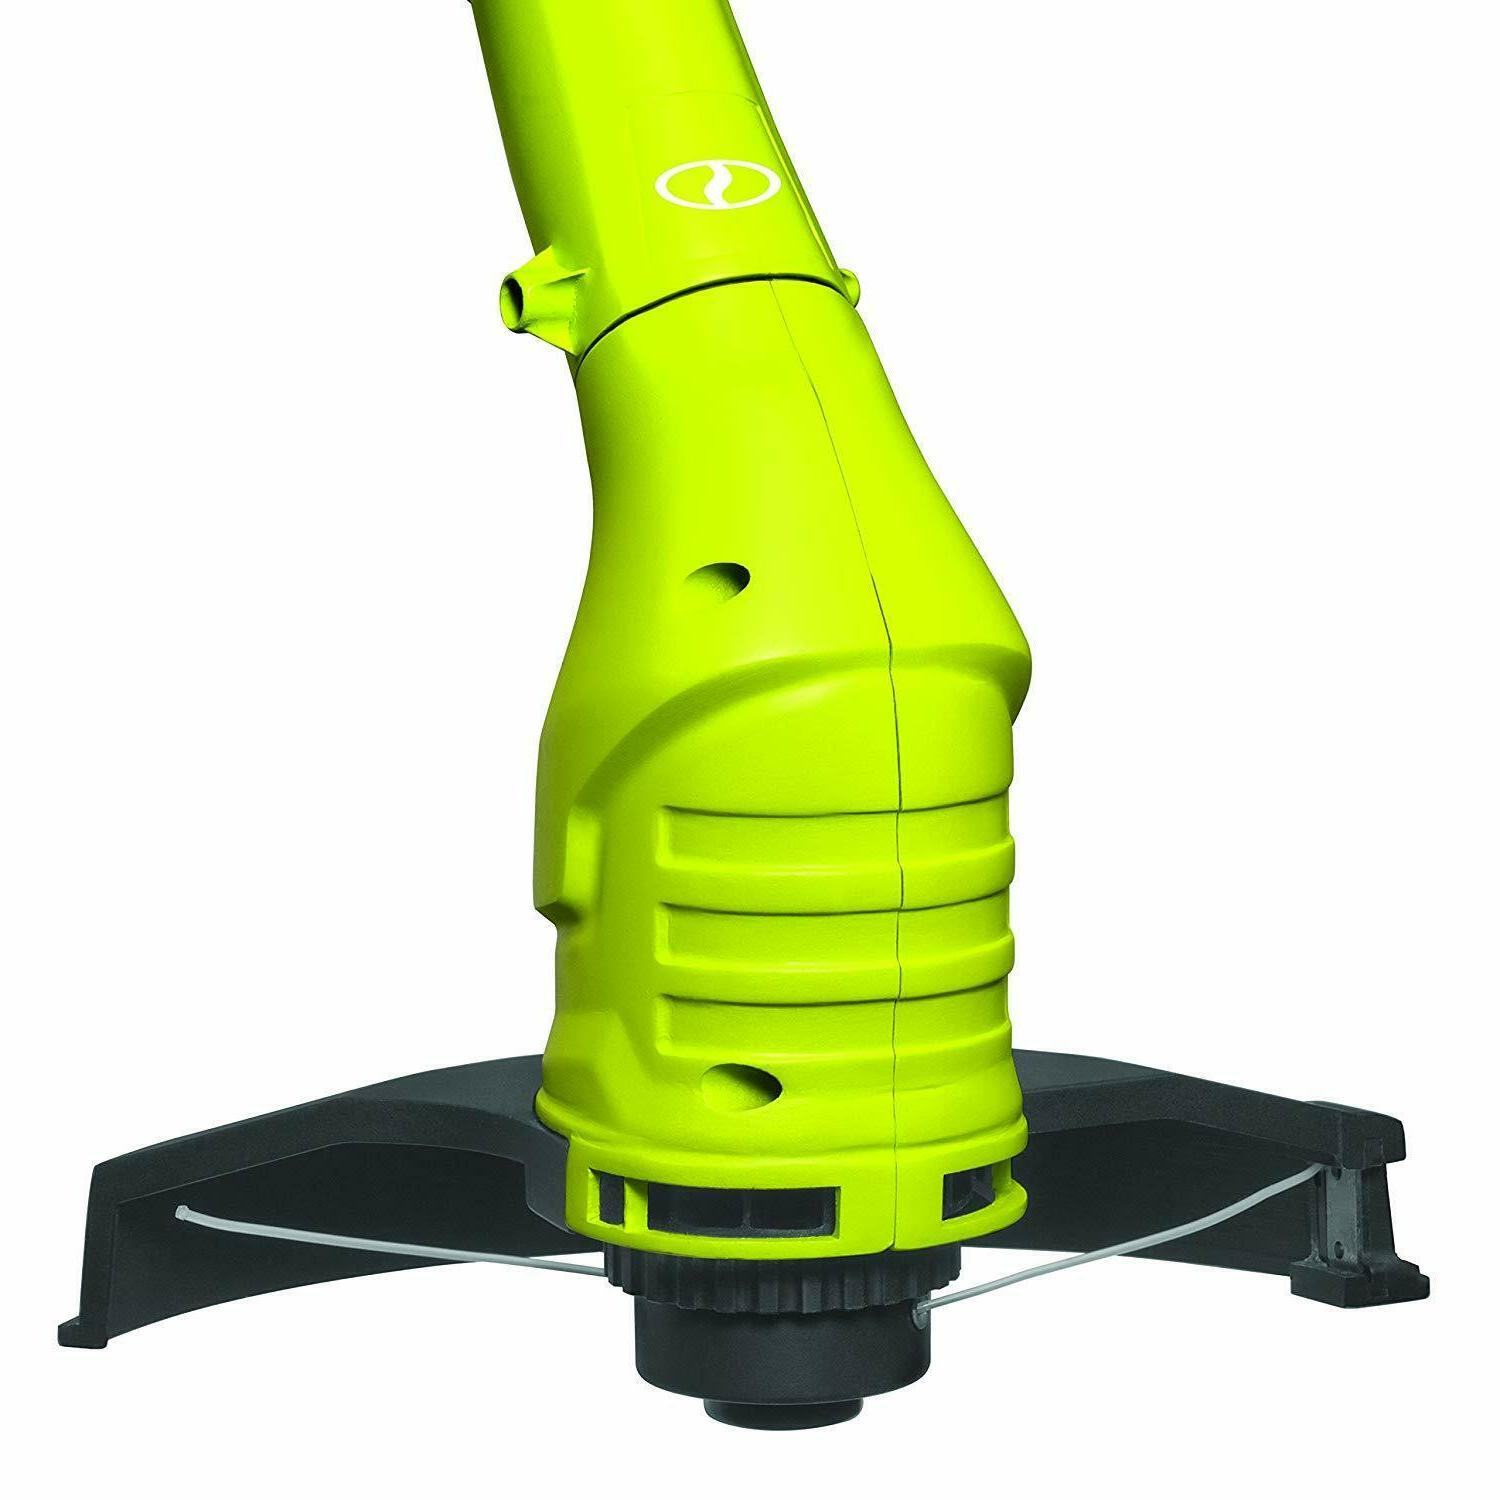 Corded Electric Weed Wacker For